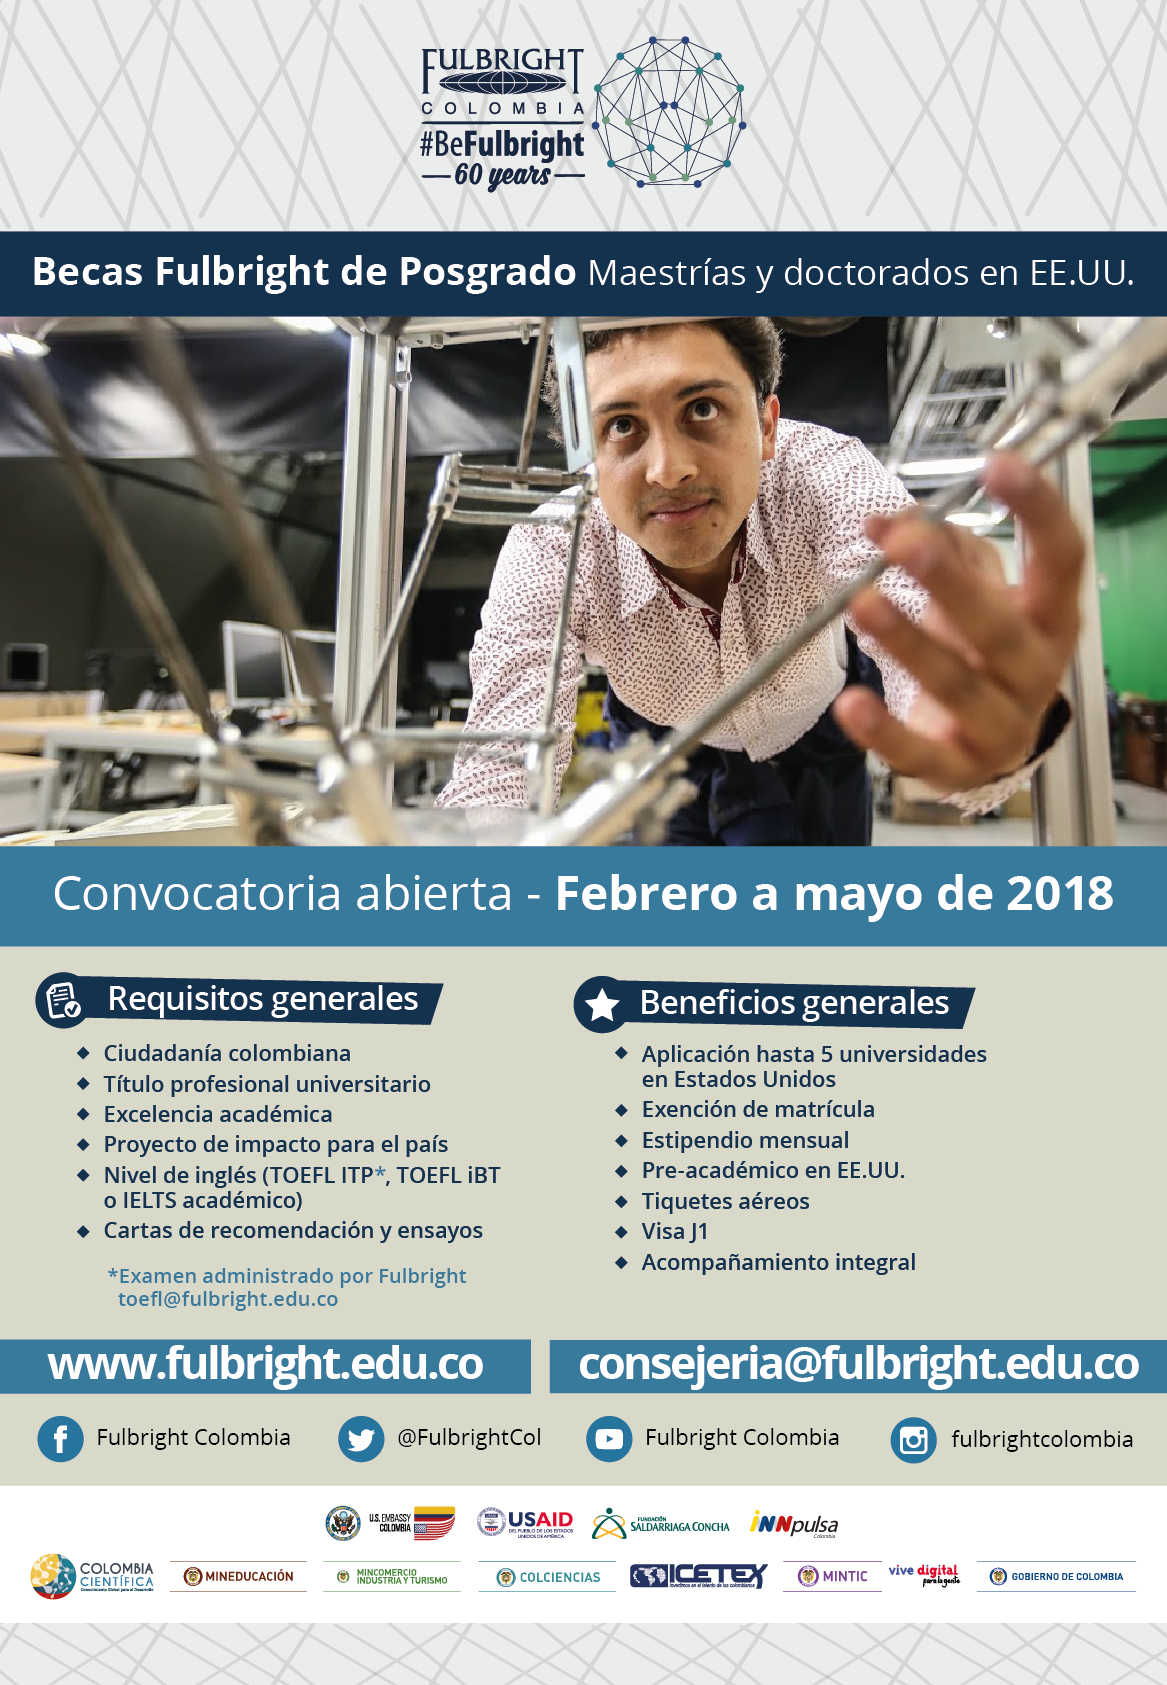 Fulbright Colombia 61 años